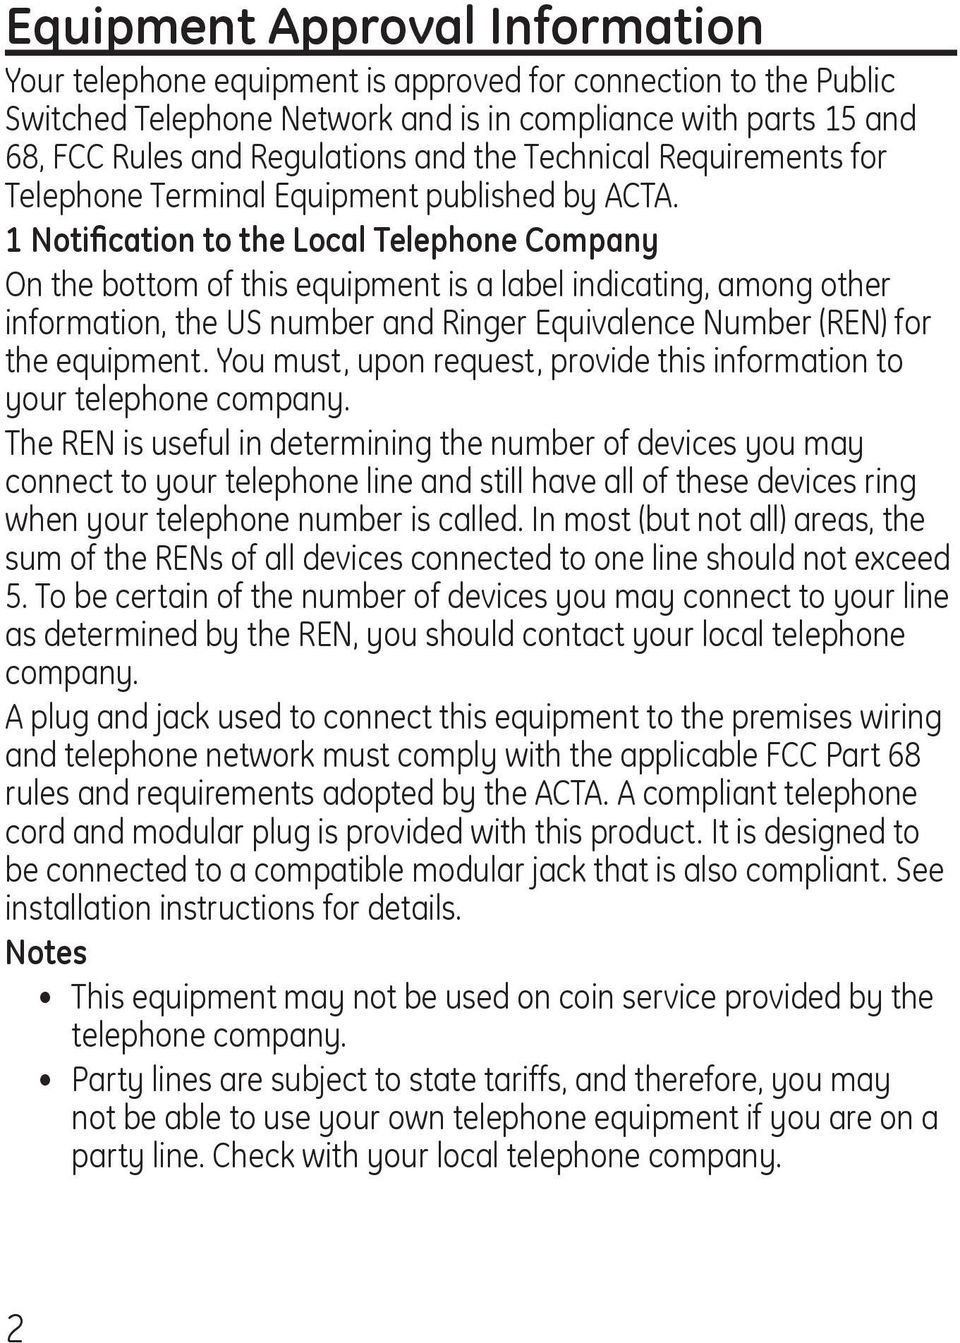 1 Notification to the Local Telephone Company On the bottom of this equipment is a label indicating, among other information, the US number and Ringer Equivalence Number (REN) for the equipment.